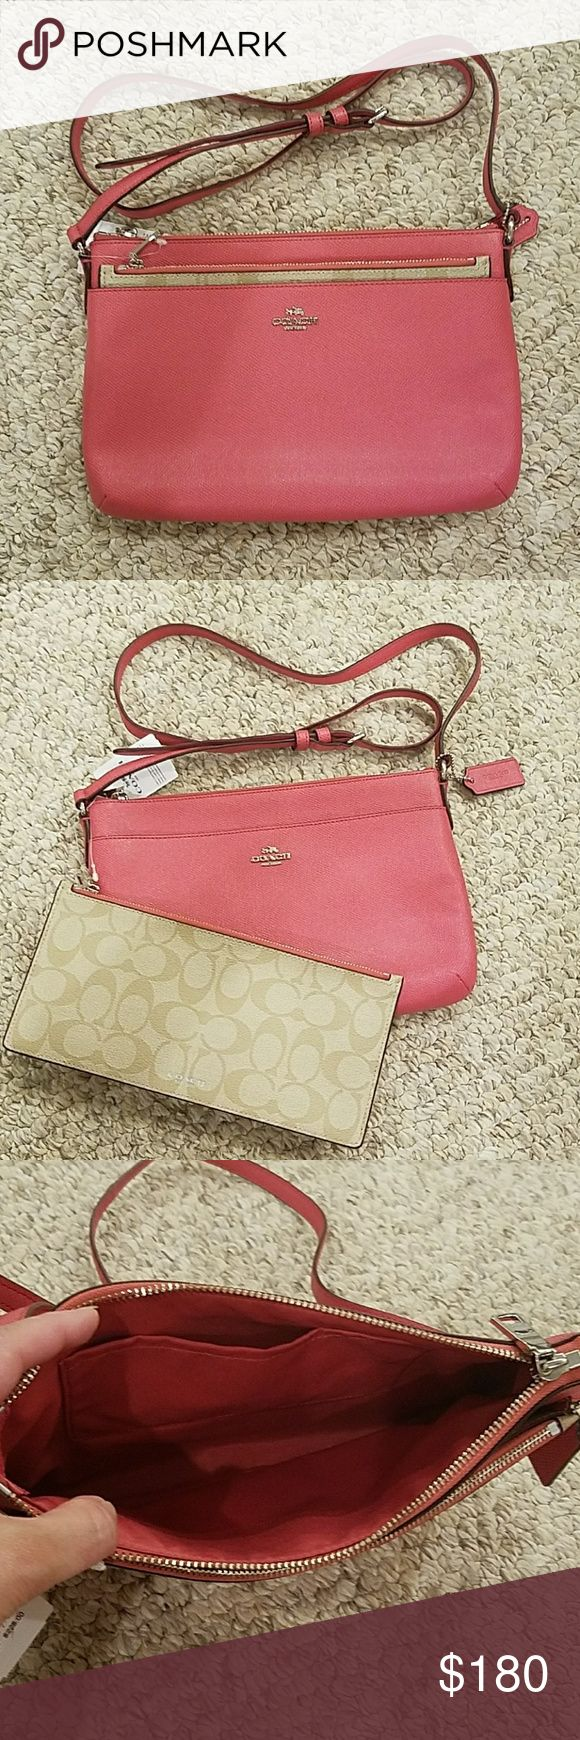 """Pink Coach purse Pink Coach purse with removable pouch, 1 front pocket, 1 top pocket with zipper closure, and 1 interior pocket.   Approx 10"""" long 7"""" tall Coach Bags Crossbody Bags"""